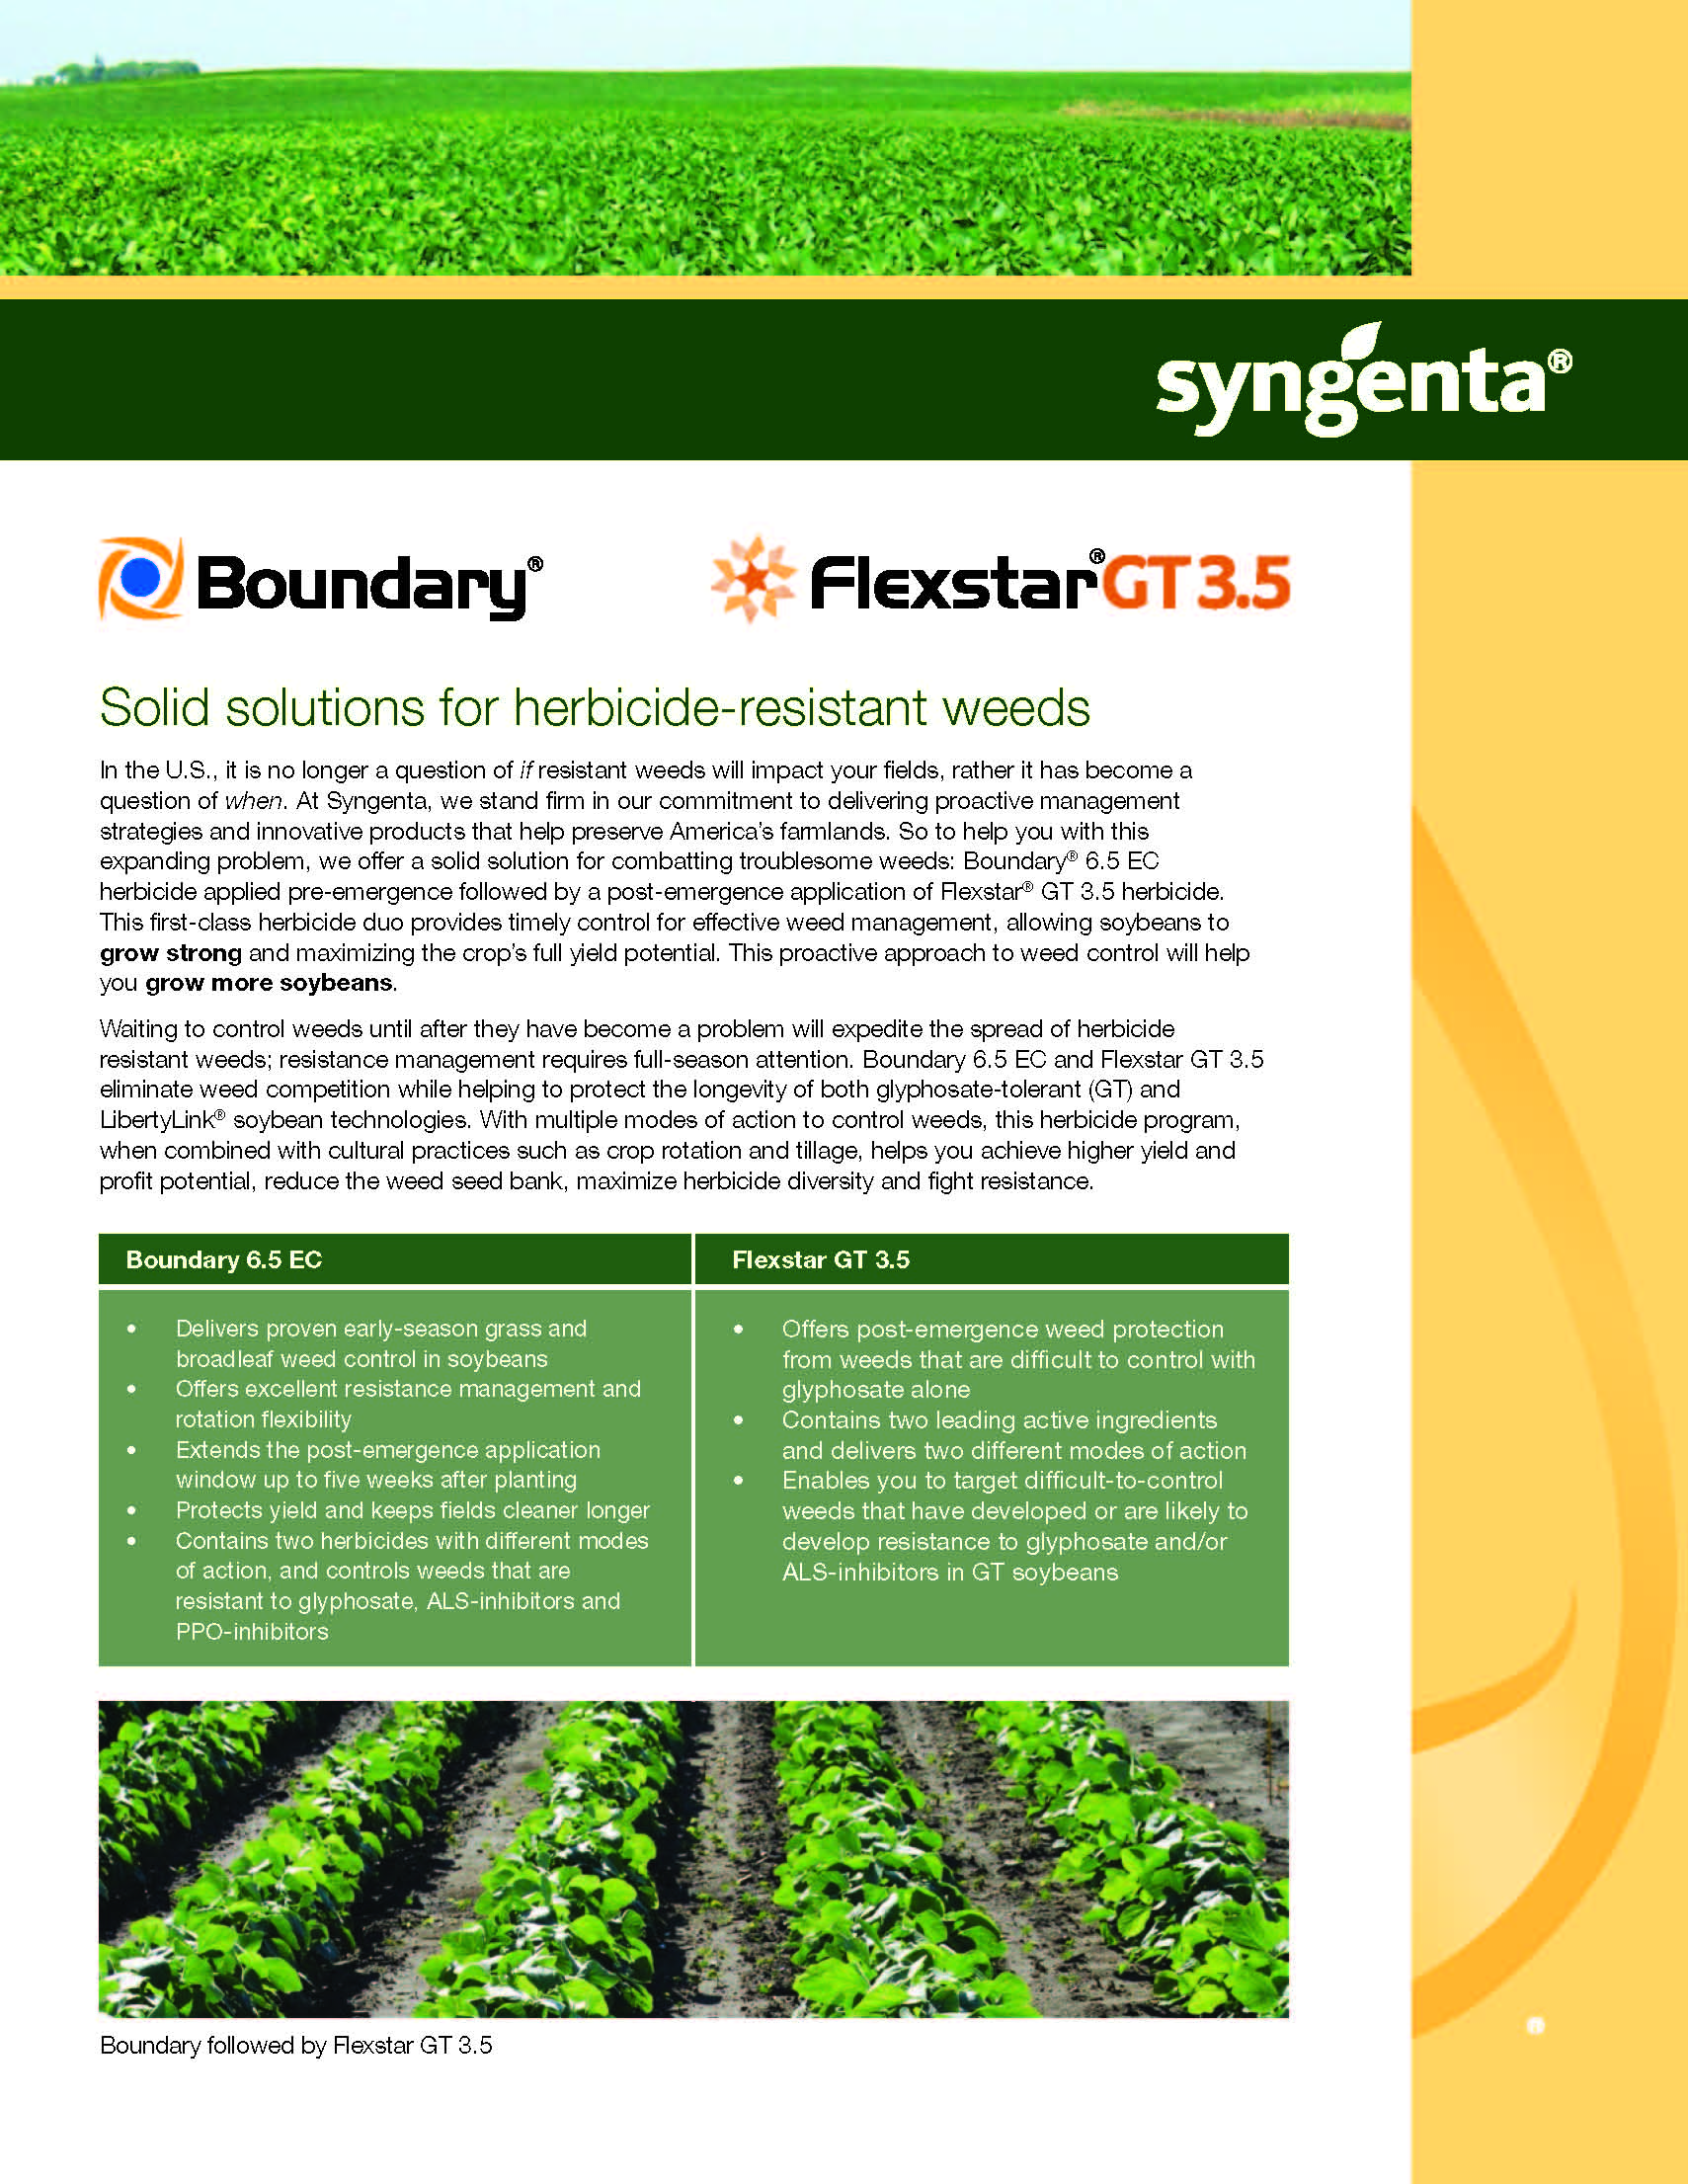 2015618201598155924_Boundary-Flexstar-Sell.jpg PDF